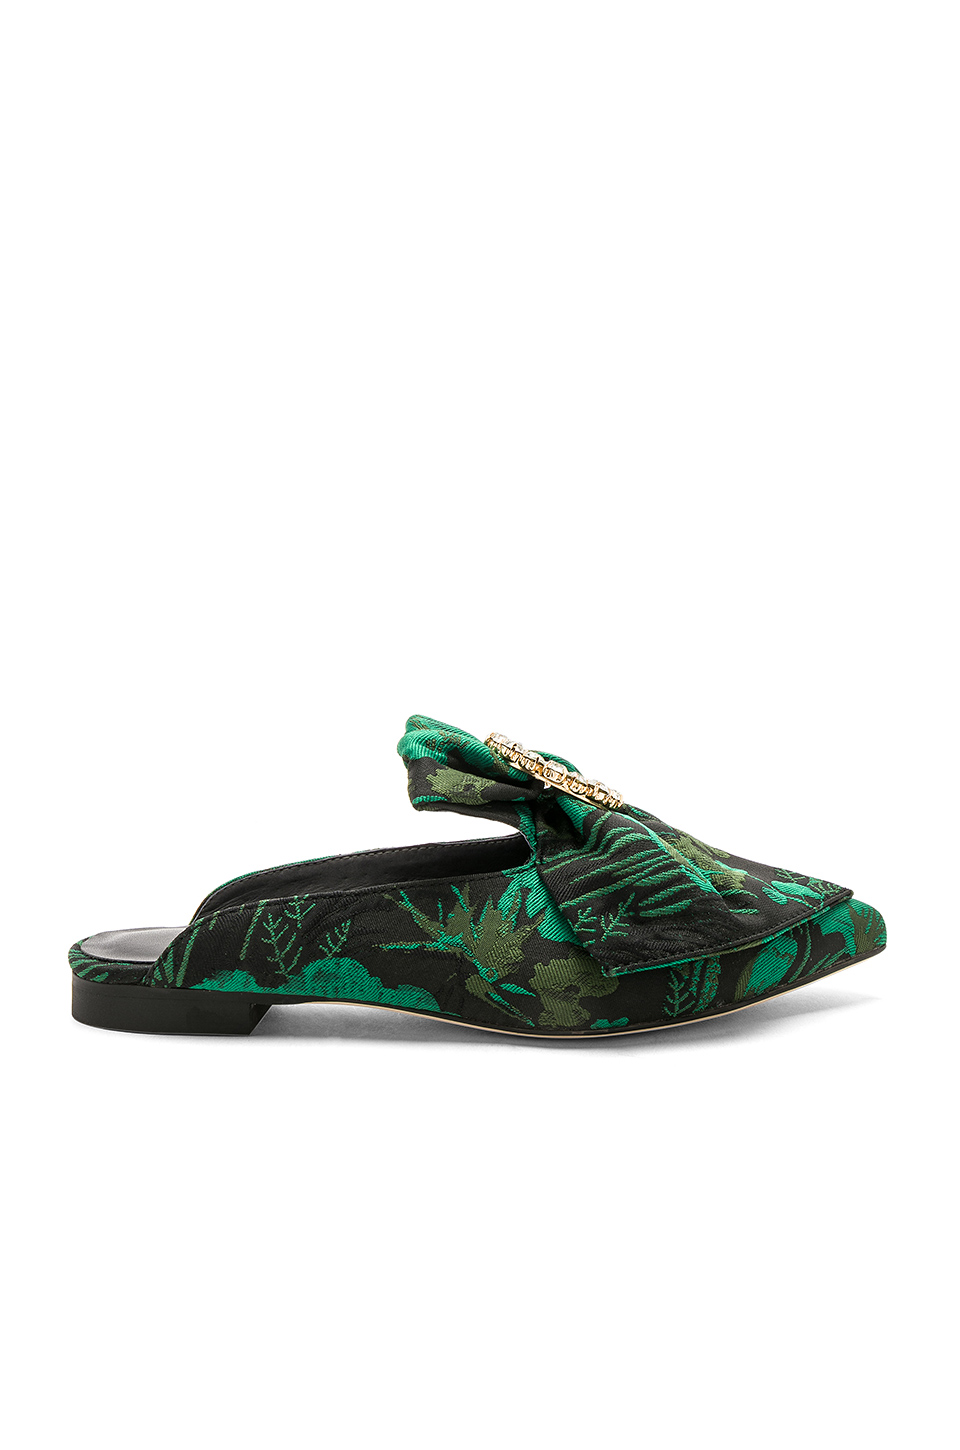 RAYE Isley Slide in Green